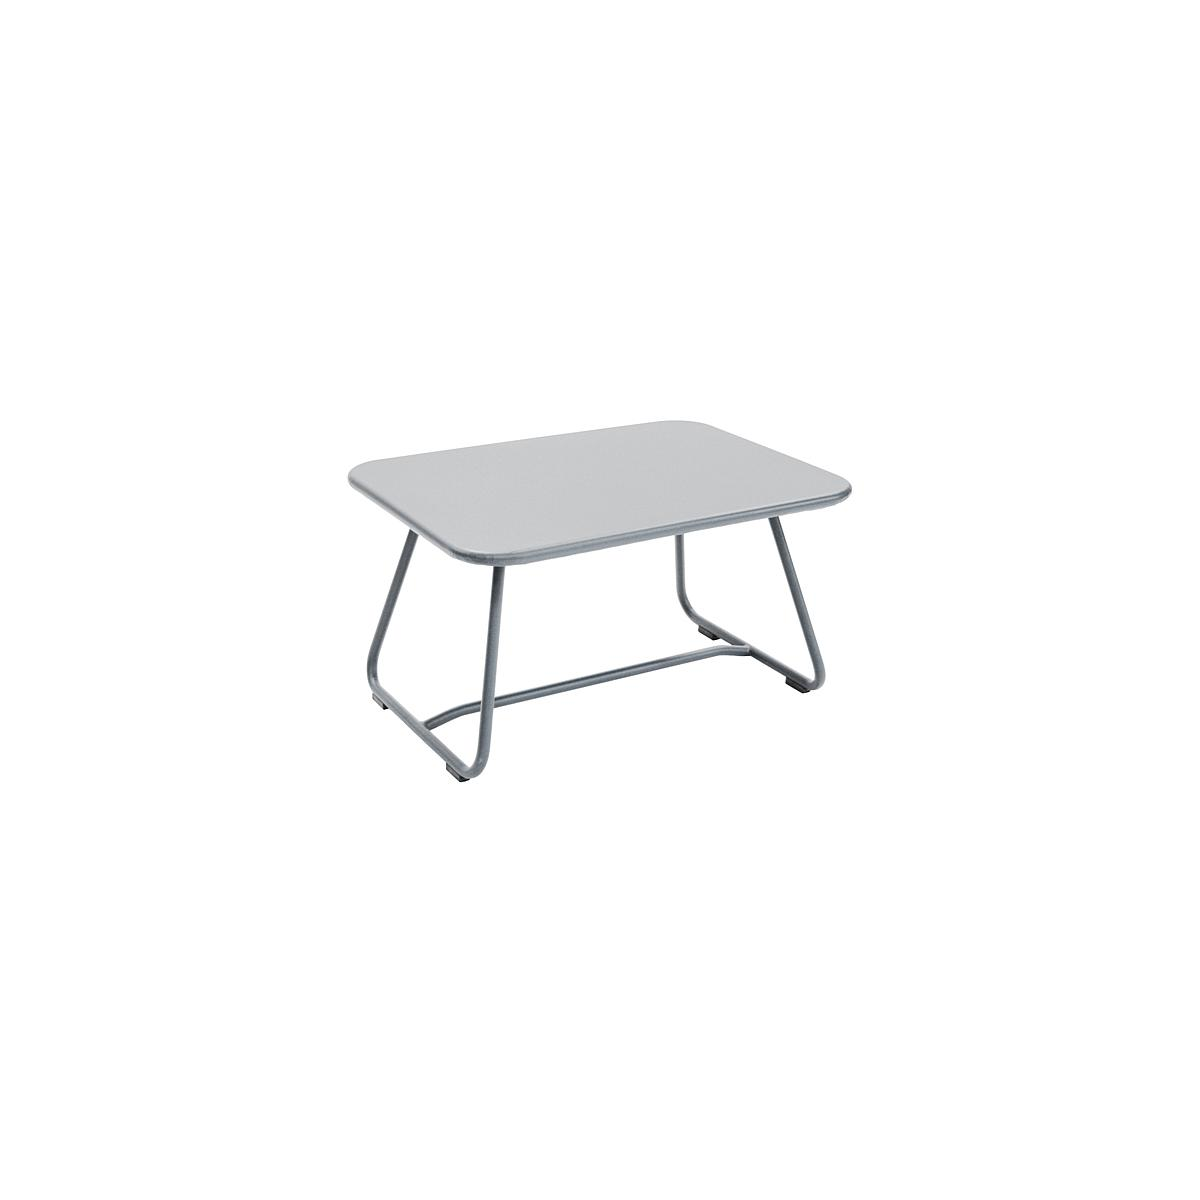 SIXTIES by Fermob Table basse Gris métal